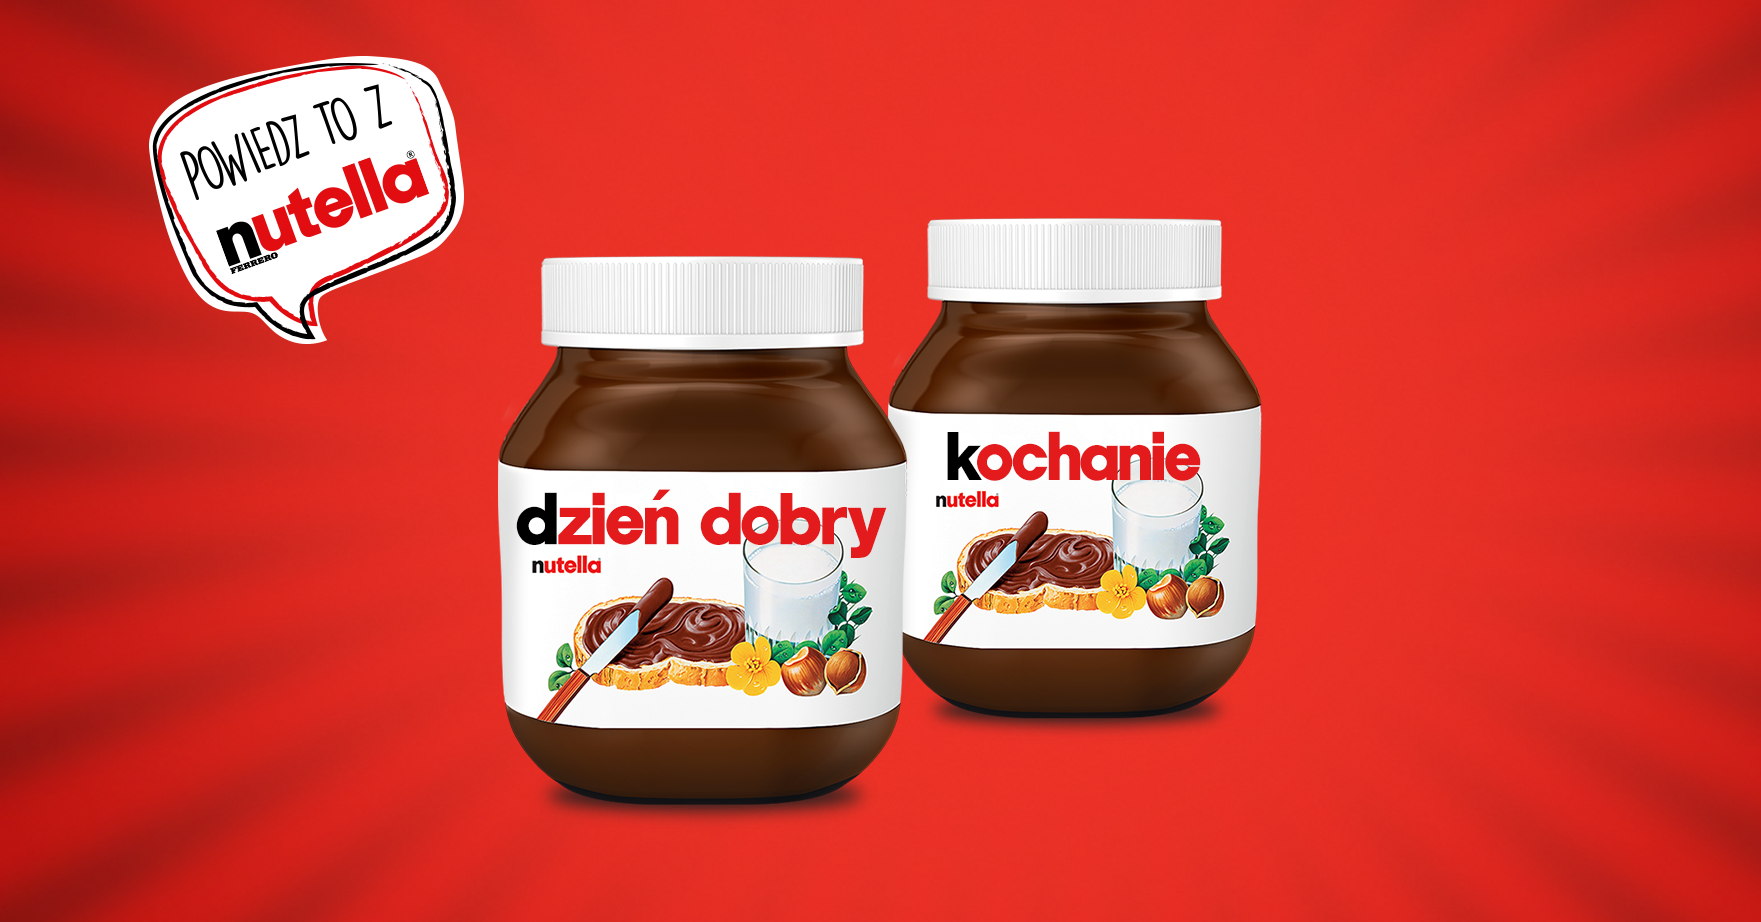 Say it with Nutella®